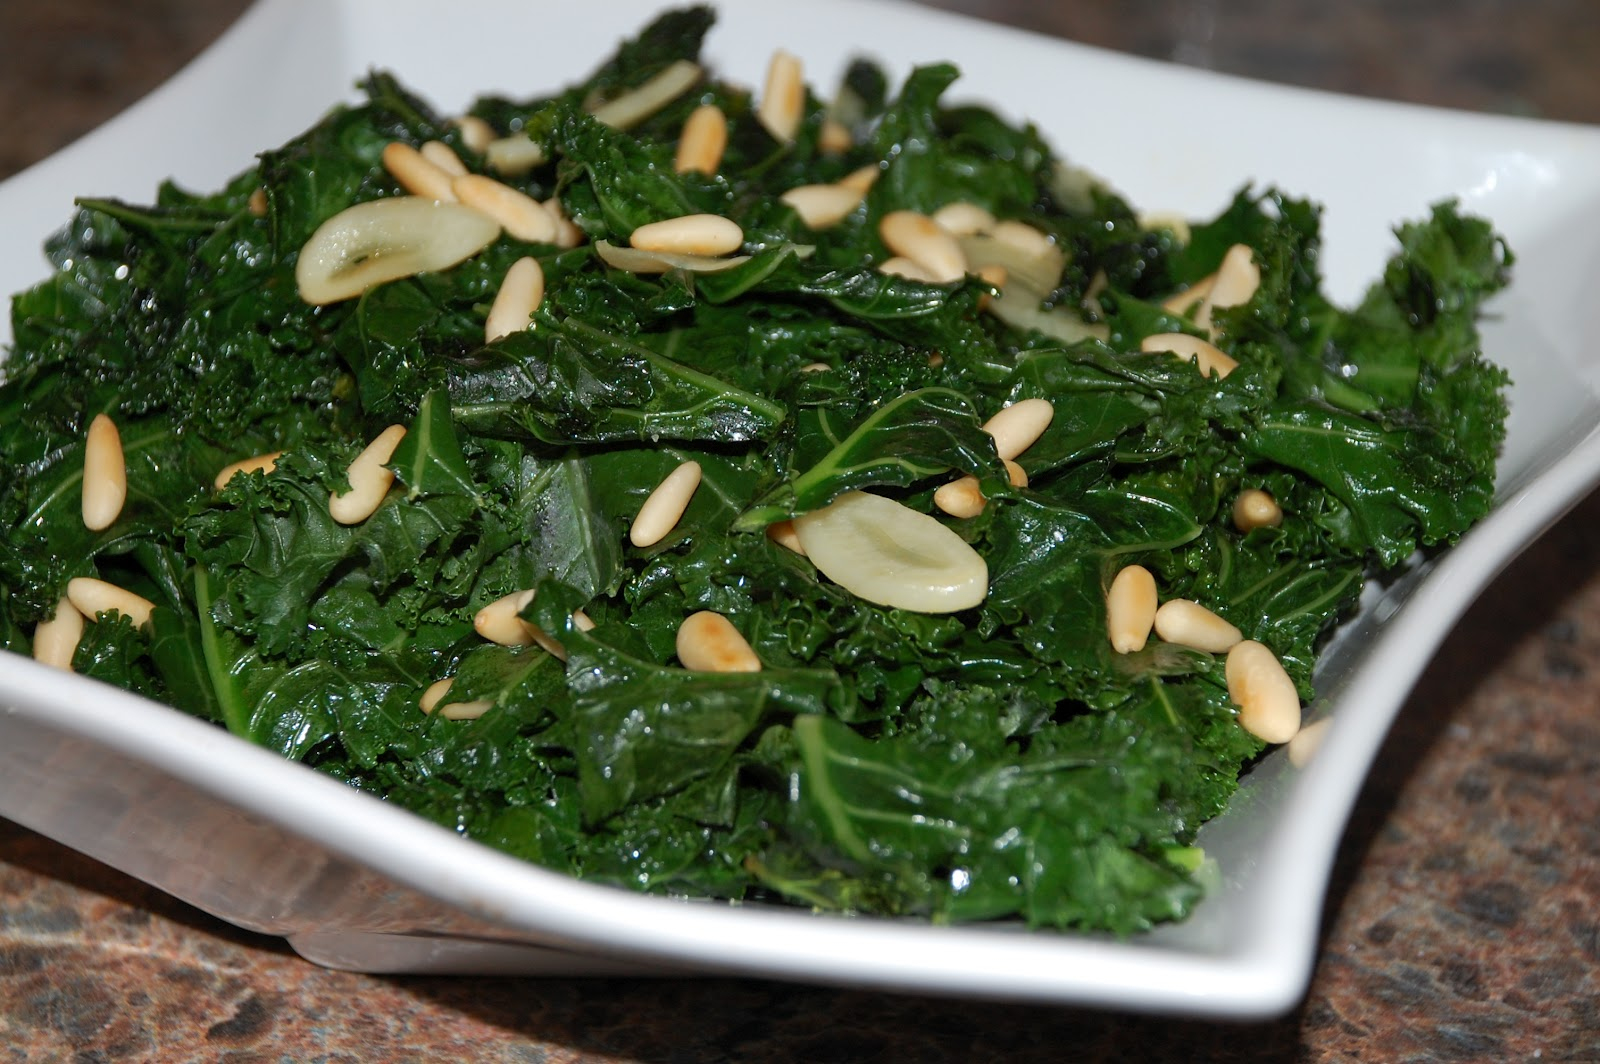 Meals, Heels, and Cocktails: Sauteed Kale with Garlic and Pine Nuts